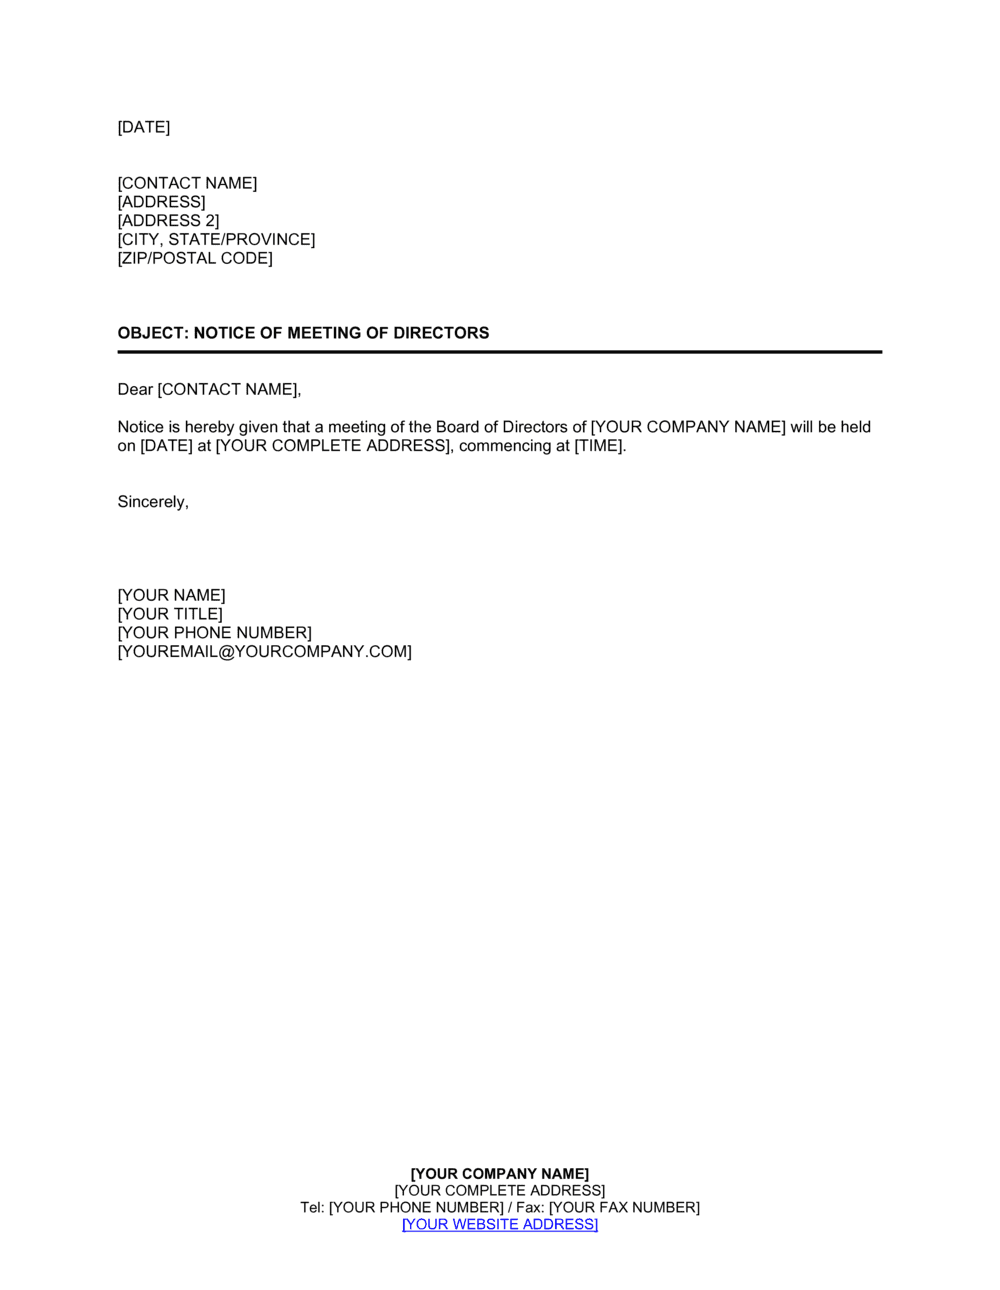 Business-in-a-Box's Notice of Meeting of Directors Template